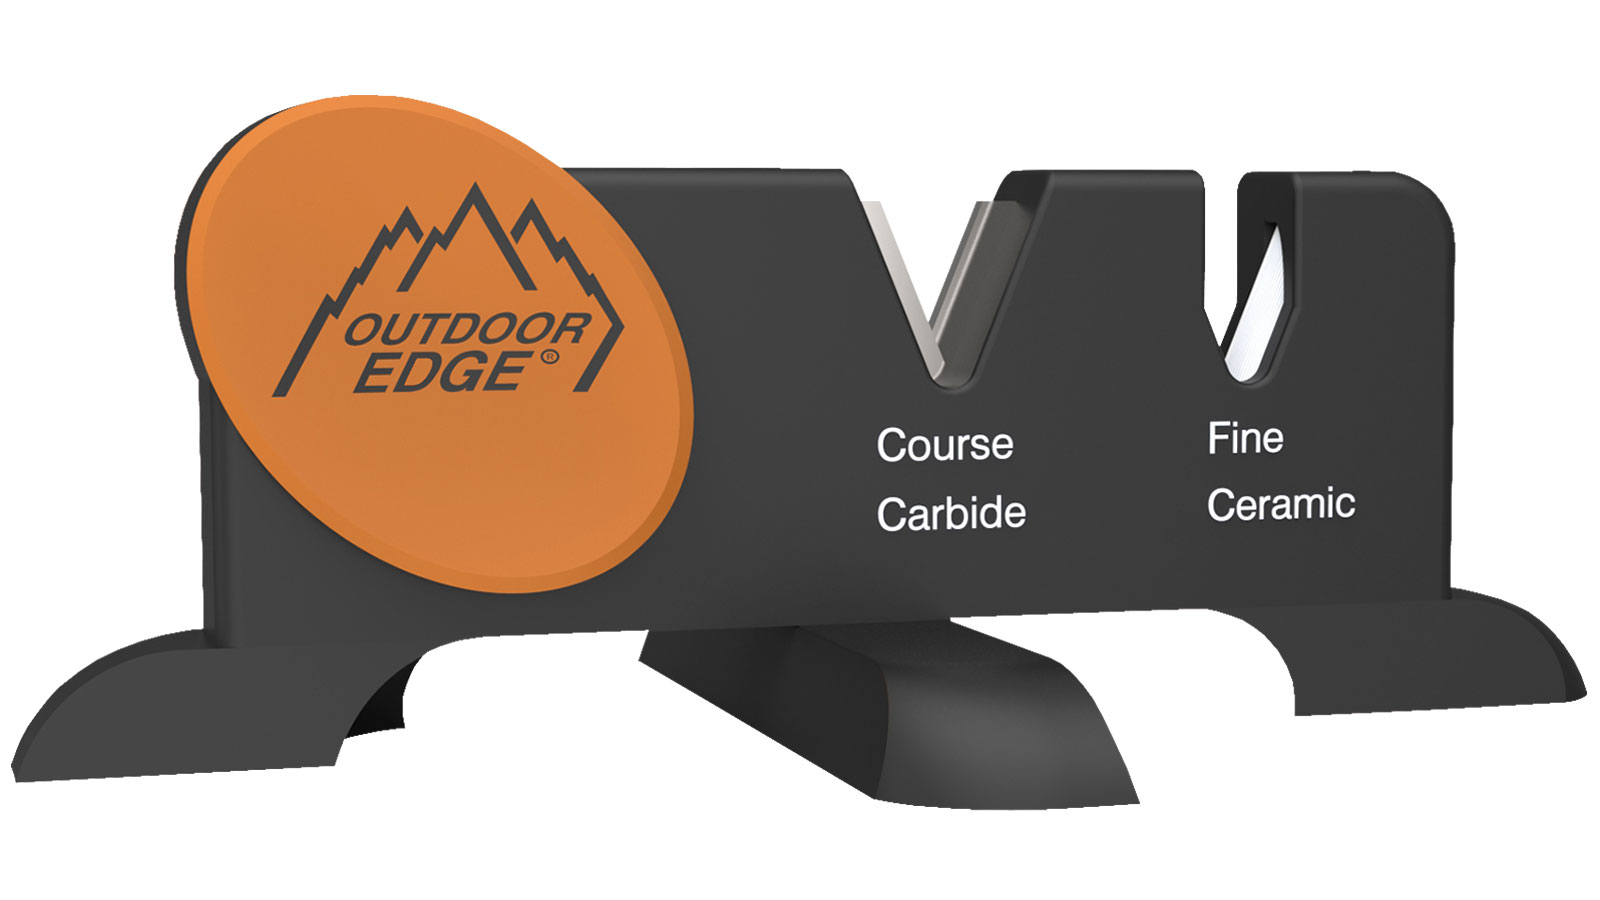 Outdoor Edge Sharp-X 2-Stage Knife Sharpener